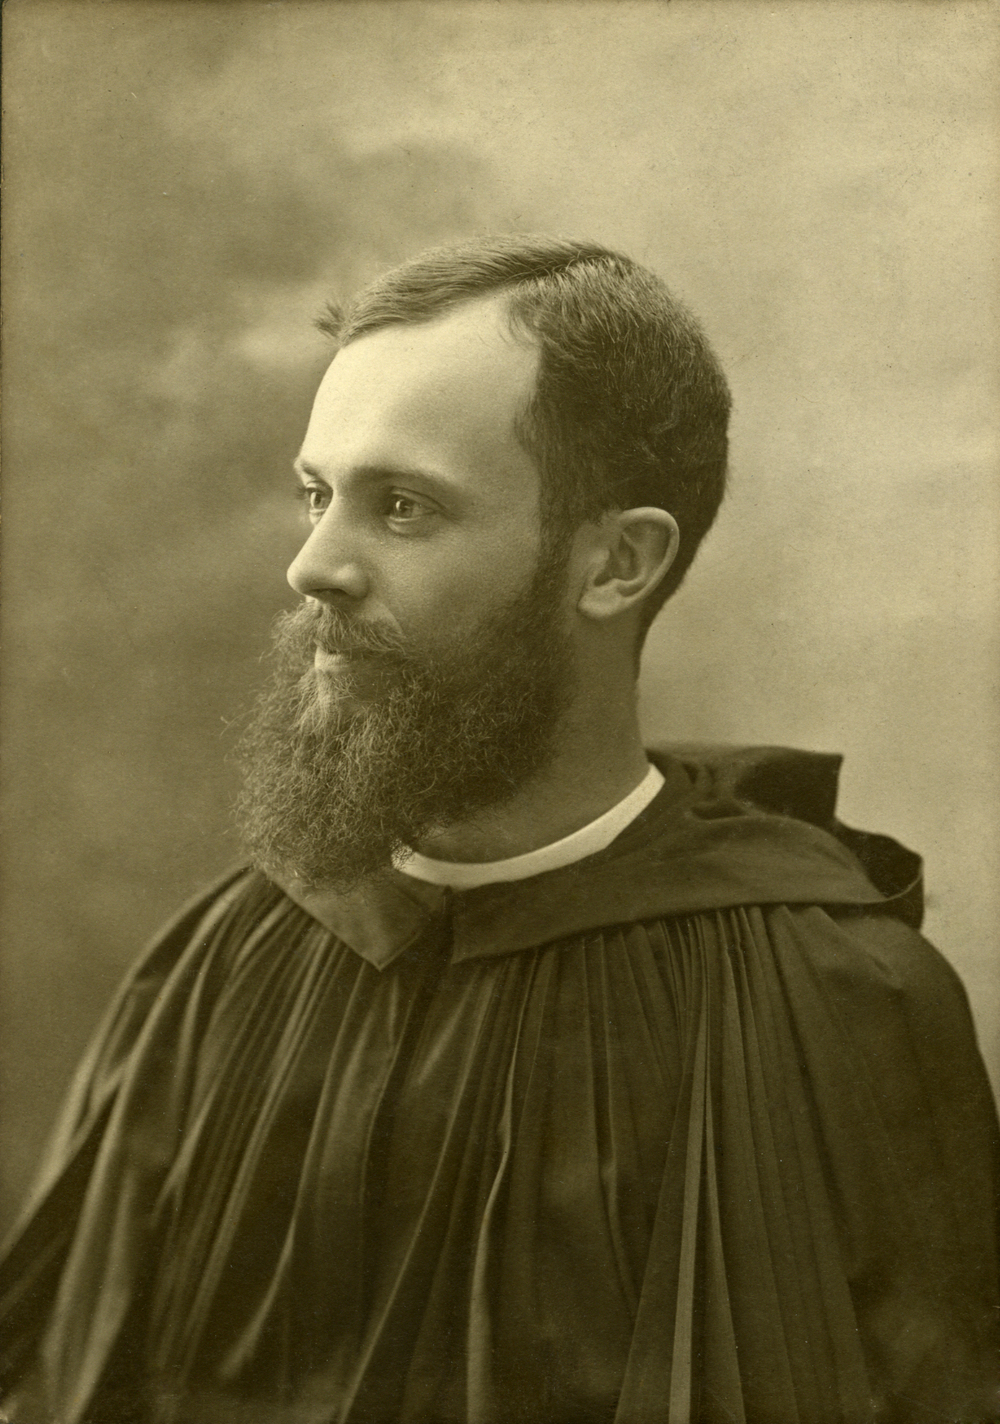 Fr. Aloysius Luther, O.S.B.